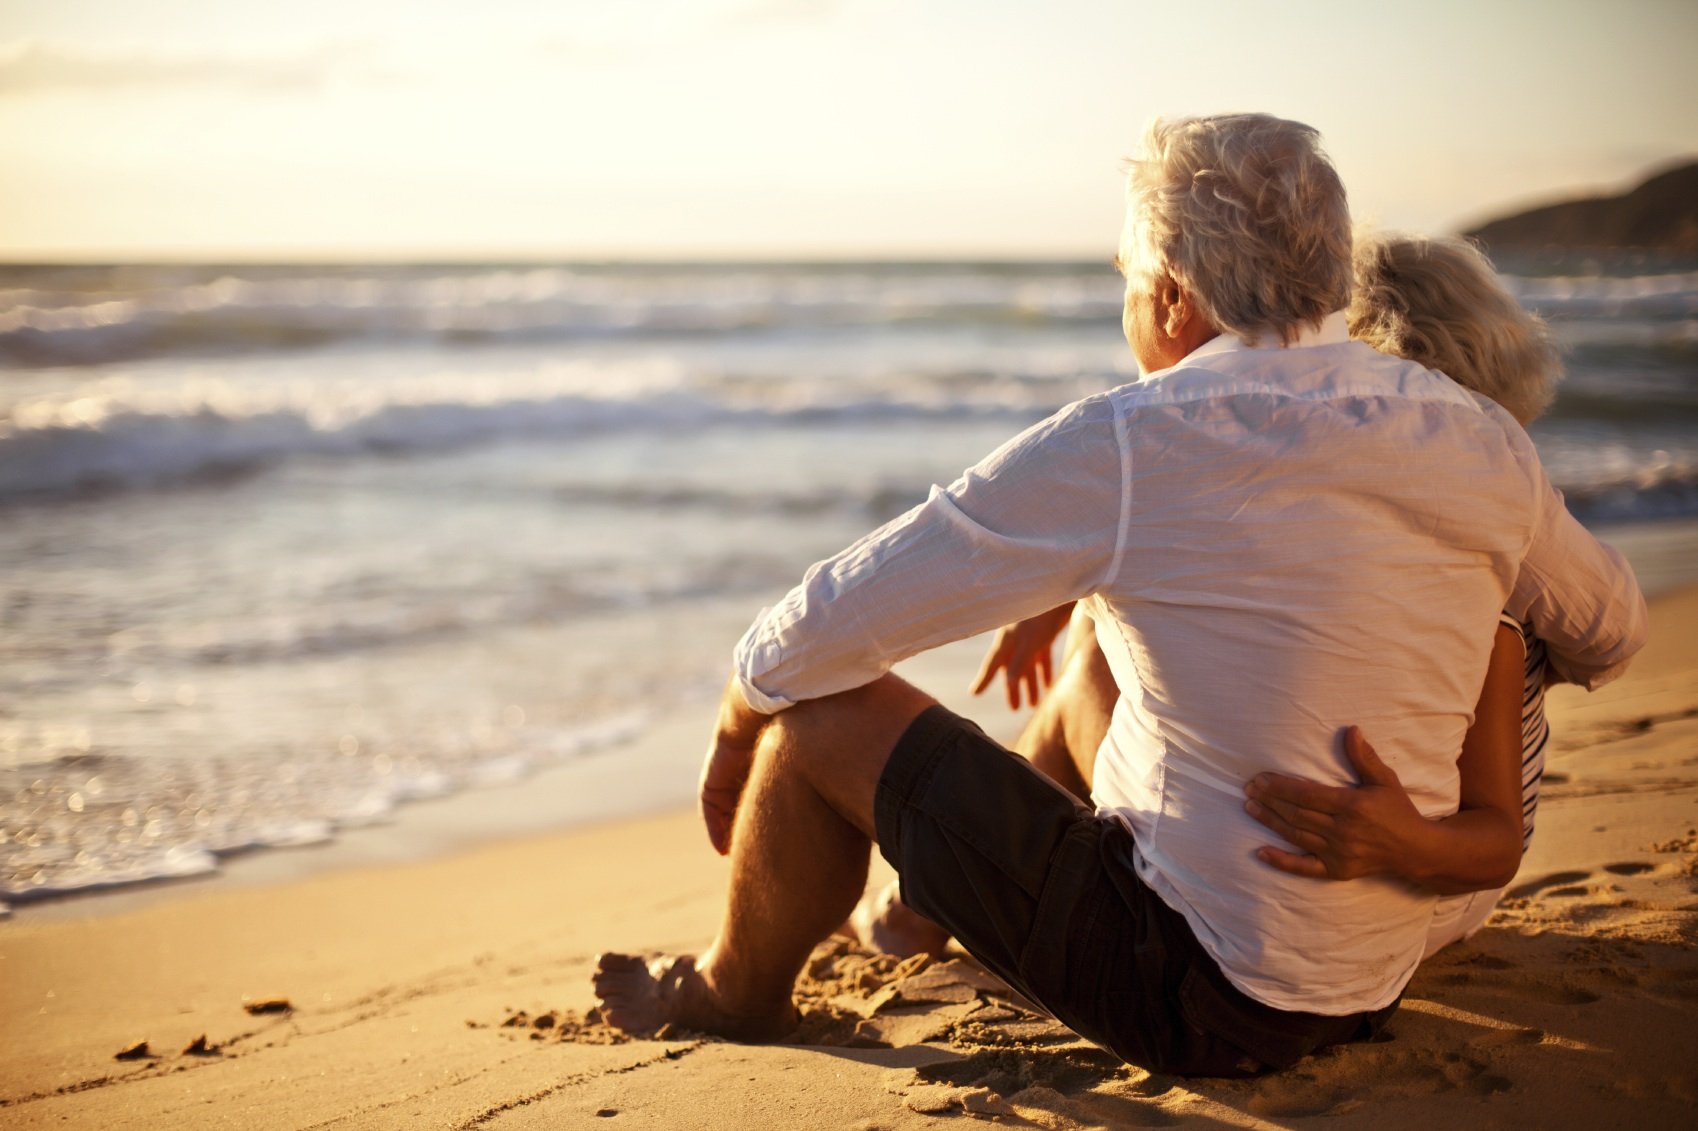 What Does a Healthy Relationship Look Like? | Psychology Today